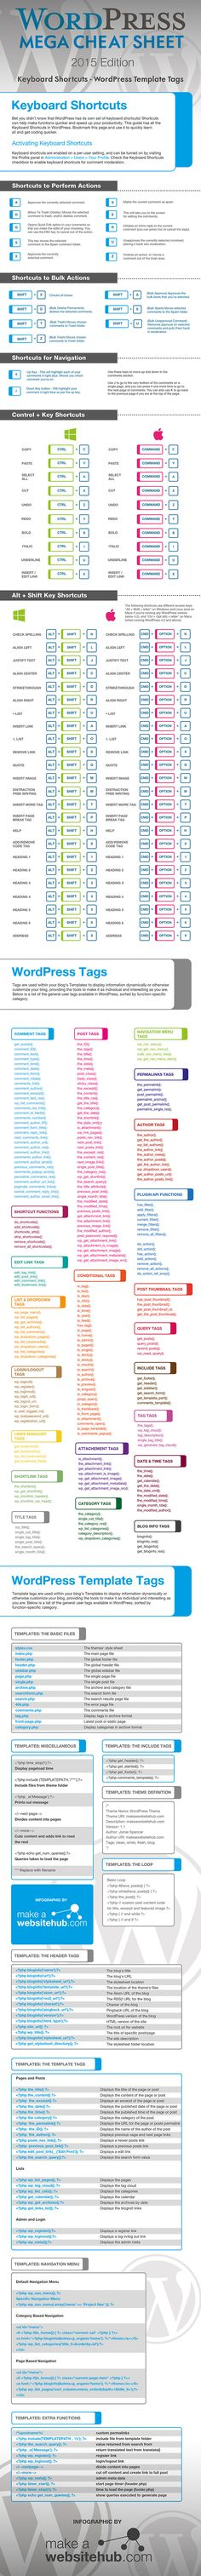 #WordPress Mega Cheat Sheet #infografía vía @ceslava